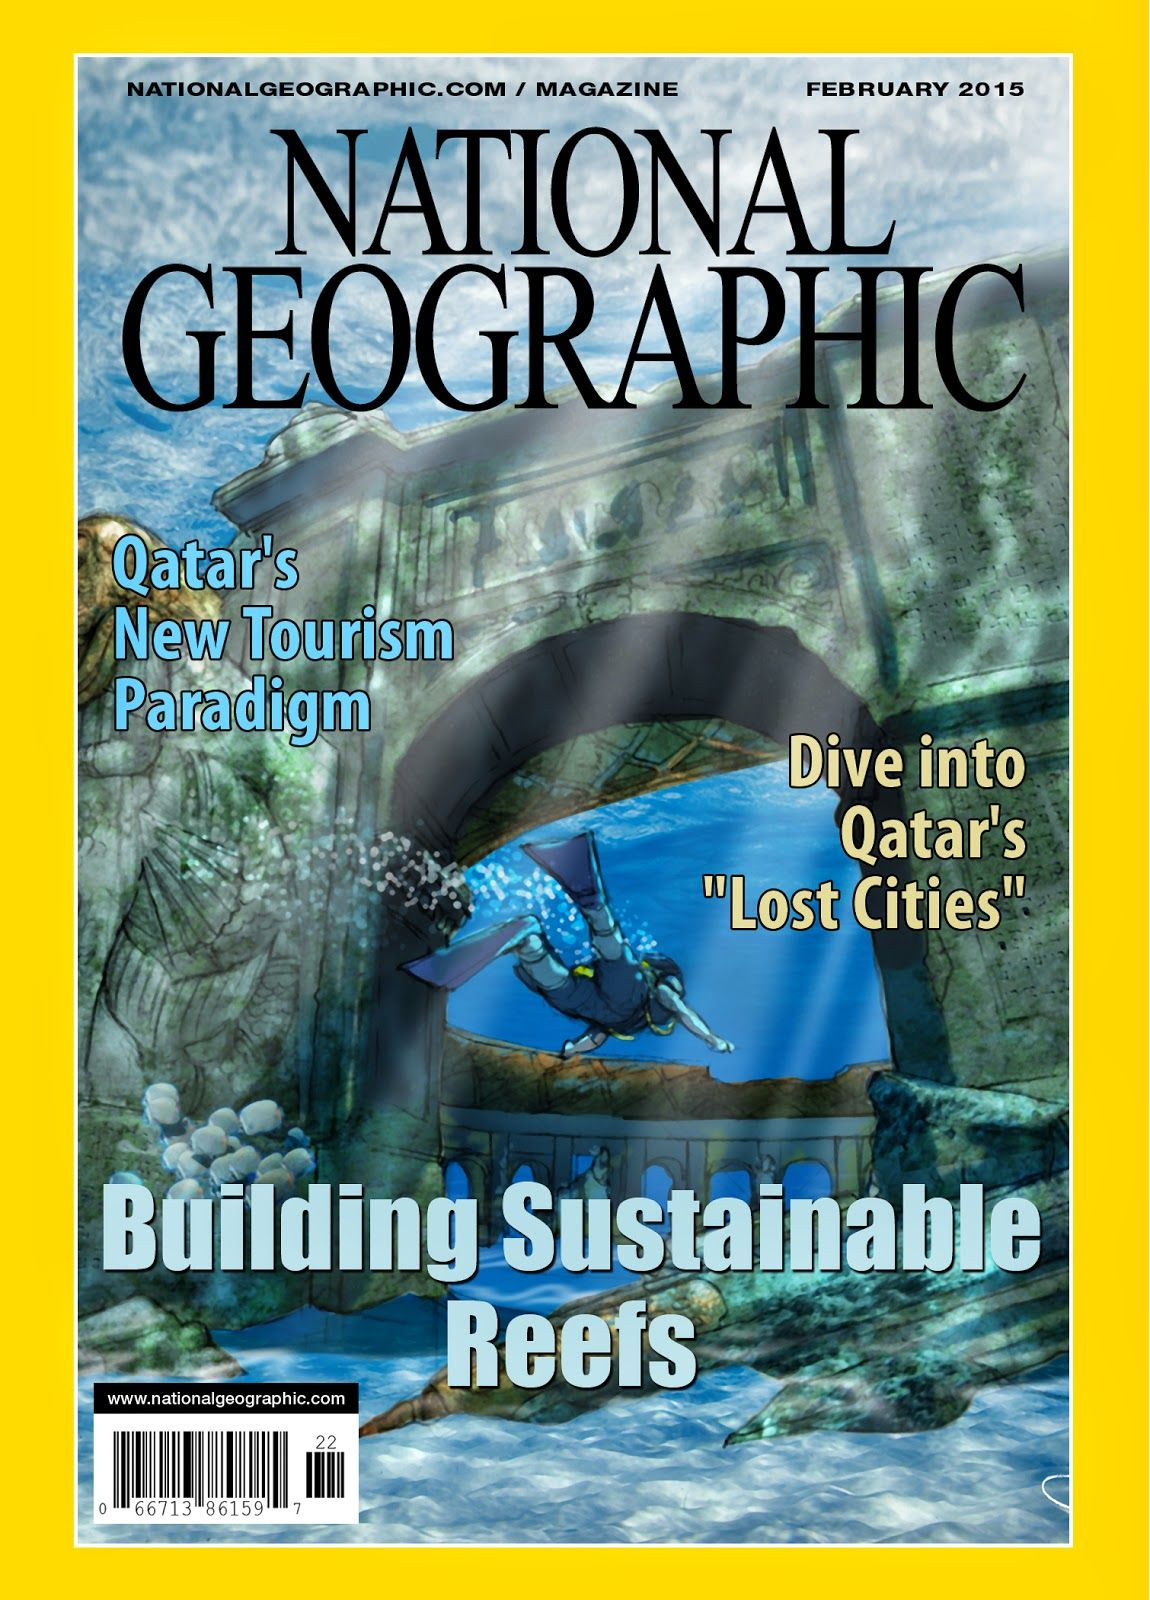 Artificial Reef Sustainable Design Blog: Artificial Reefs Key to Mass Tourism Dive Industry...